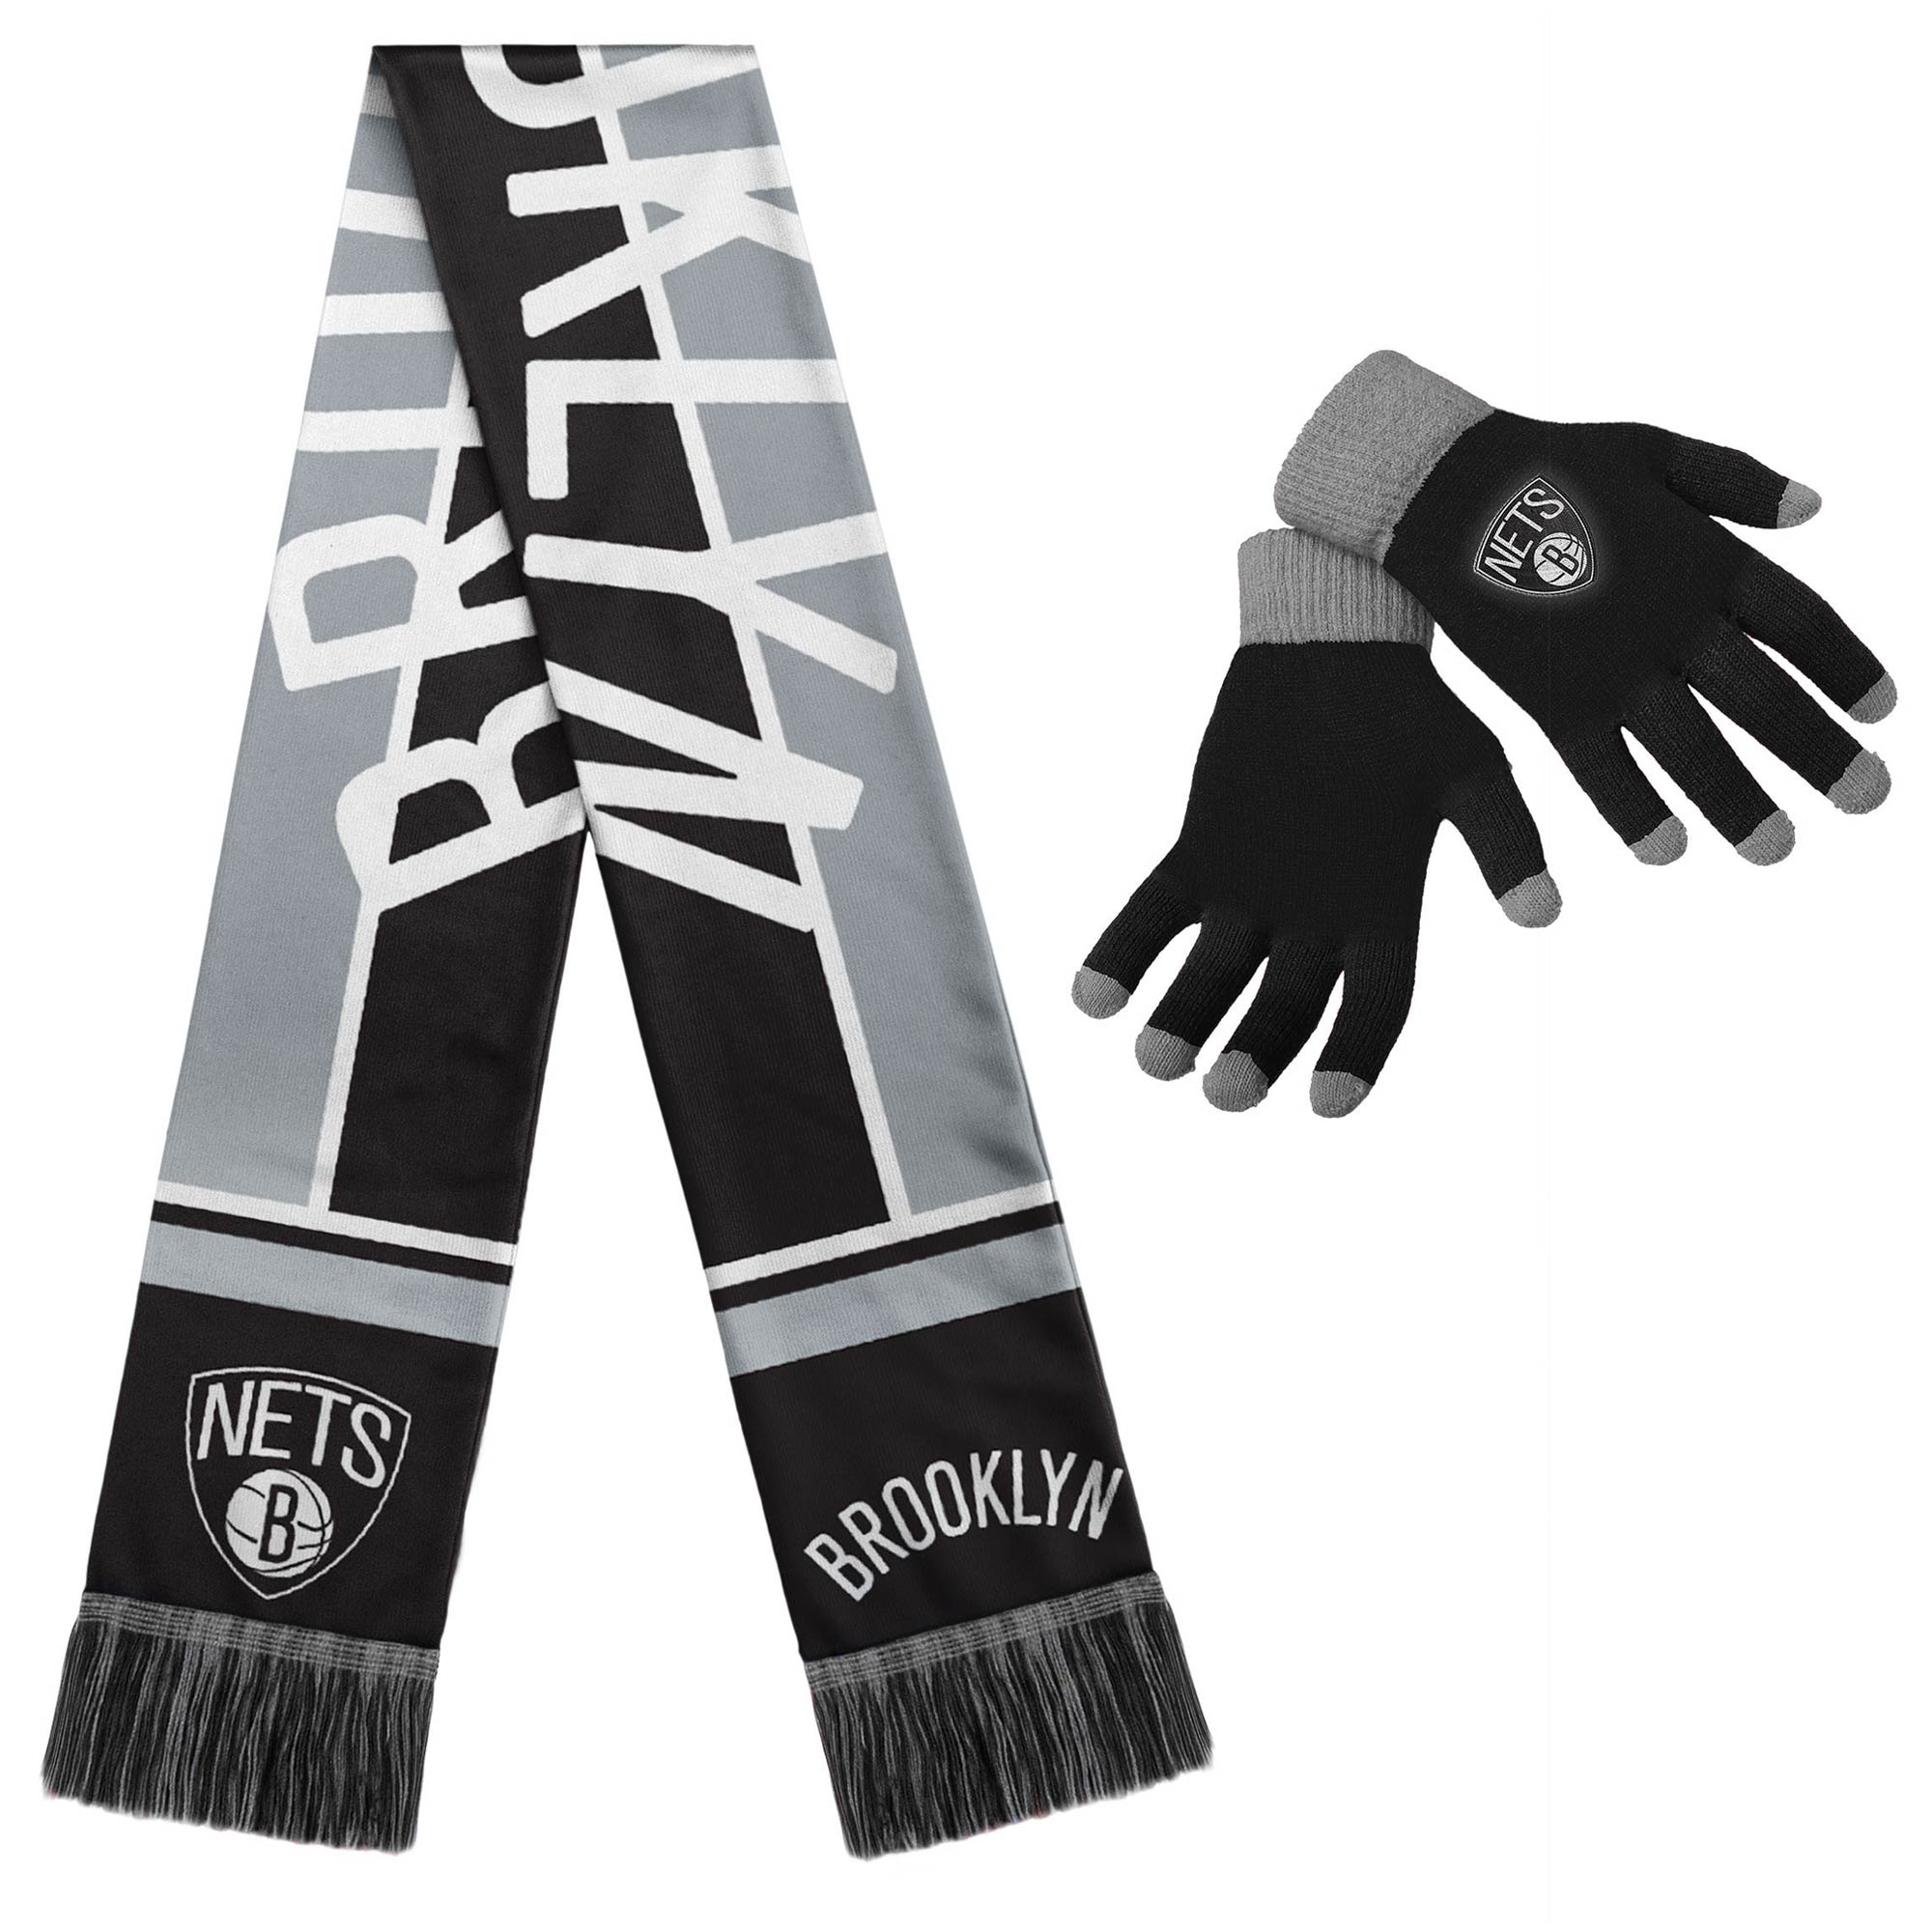 Brooklyn Nets Gloves & Scarf Set